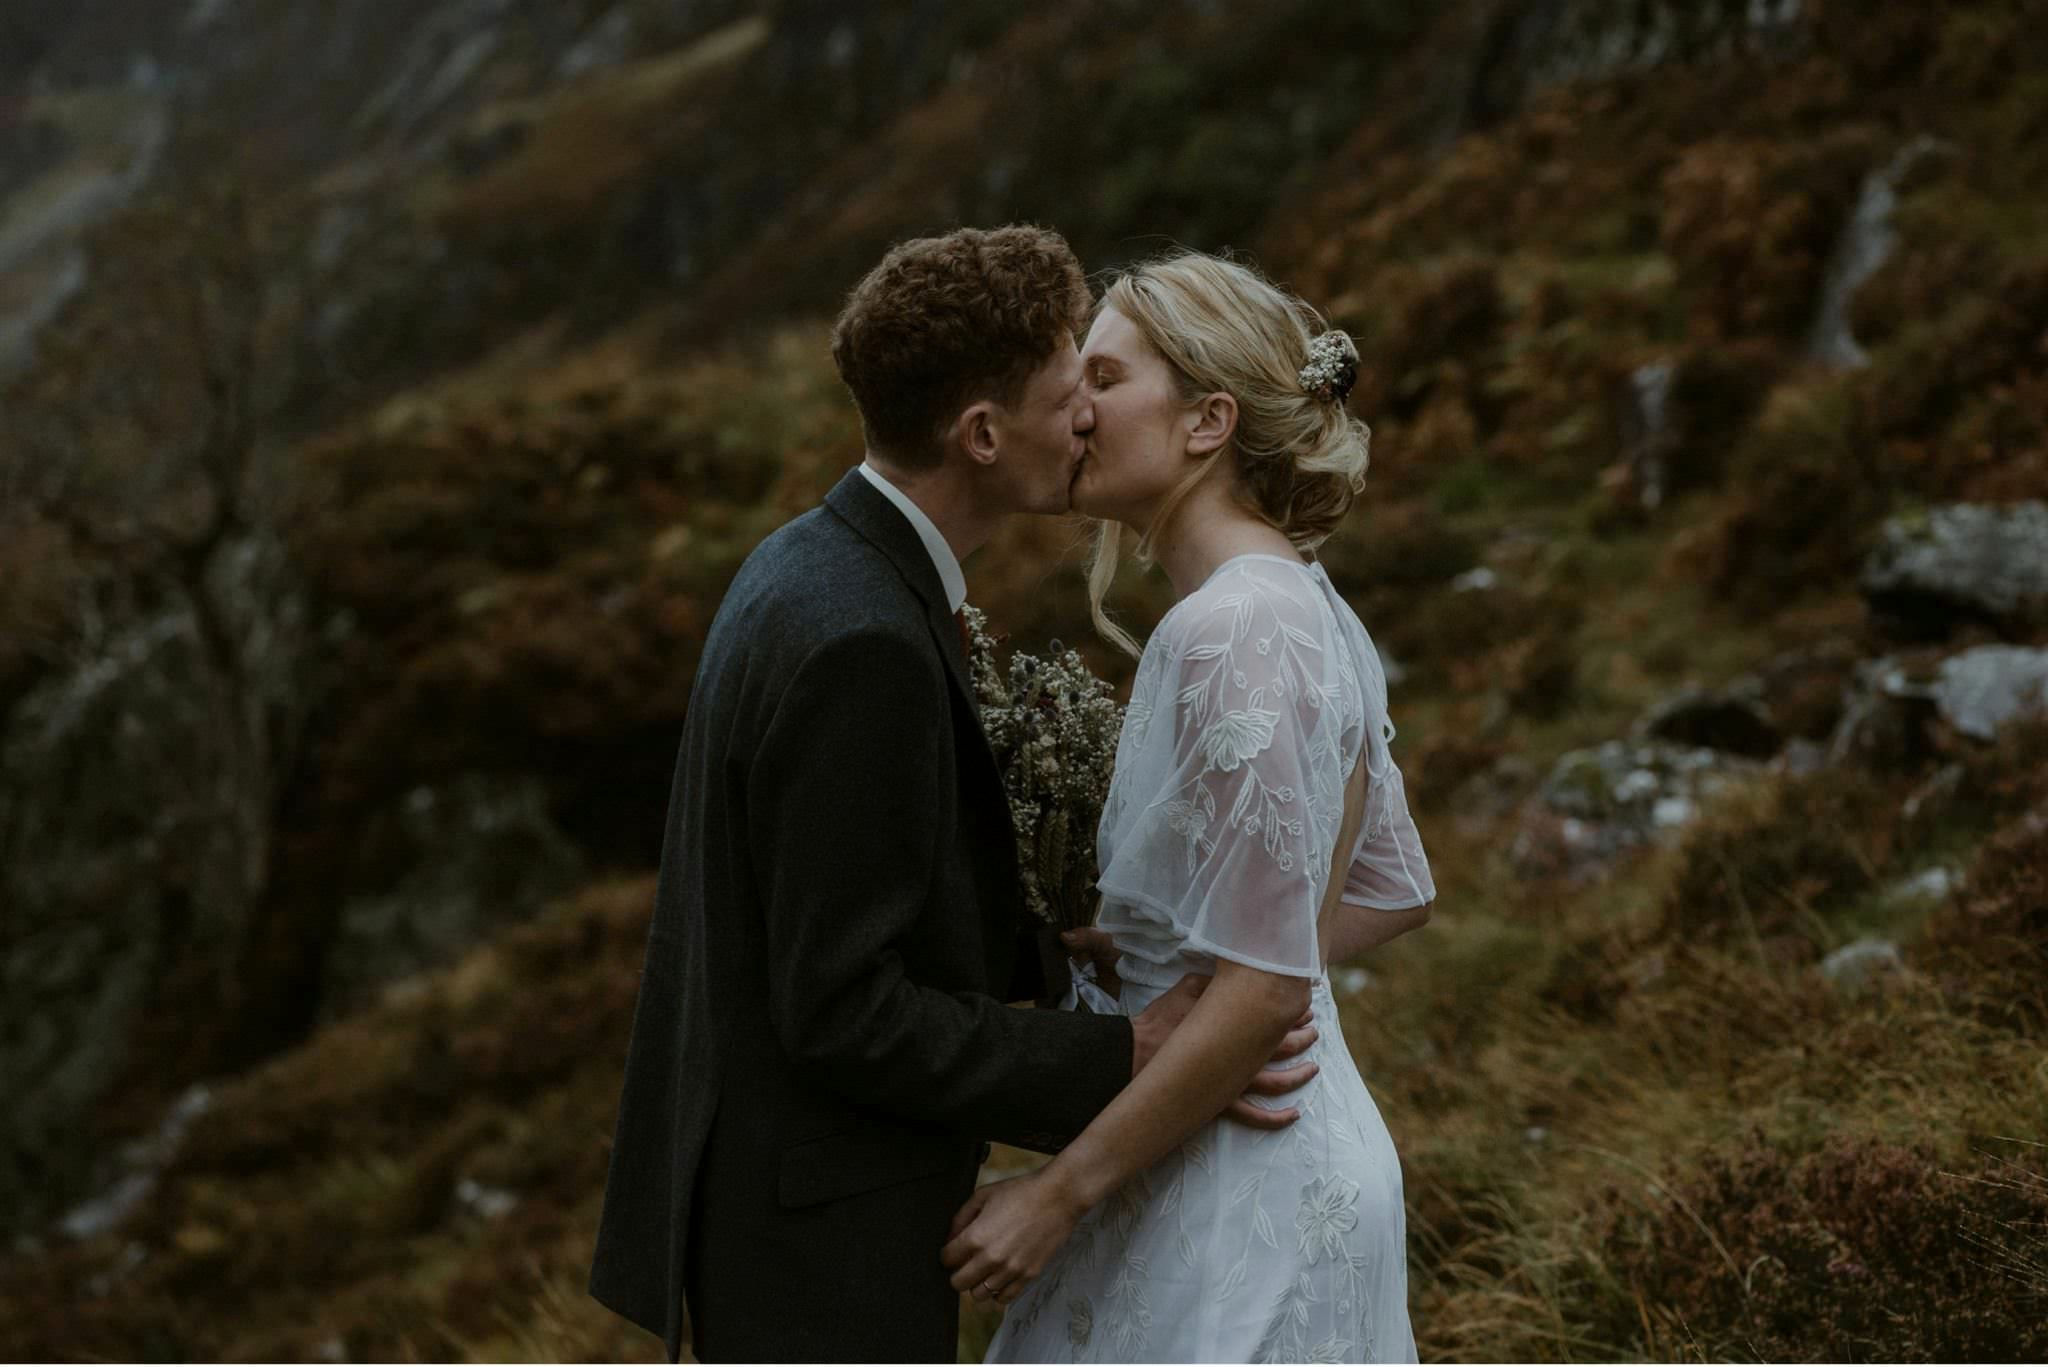 Bride and groom kiss during their wedding for two in Glencoe, Scotland